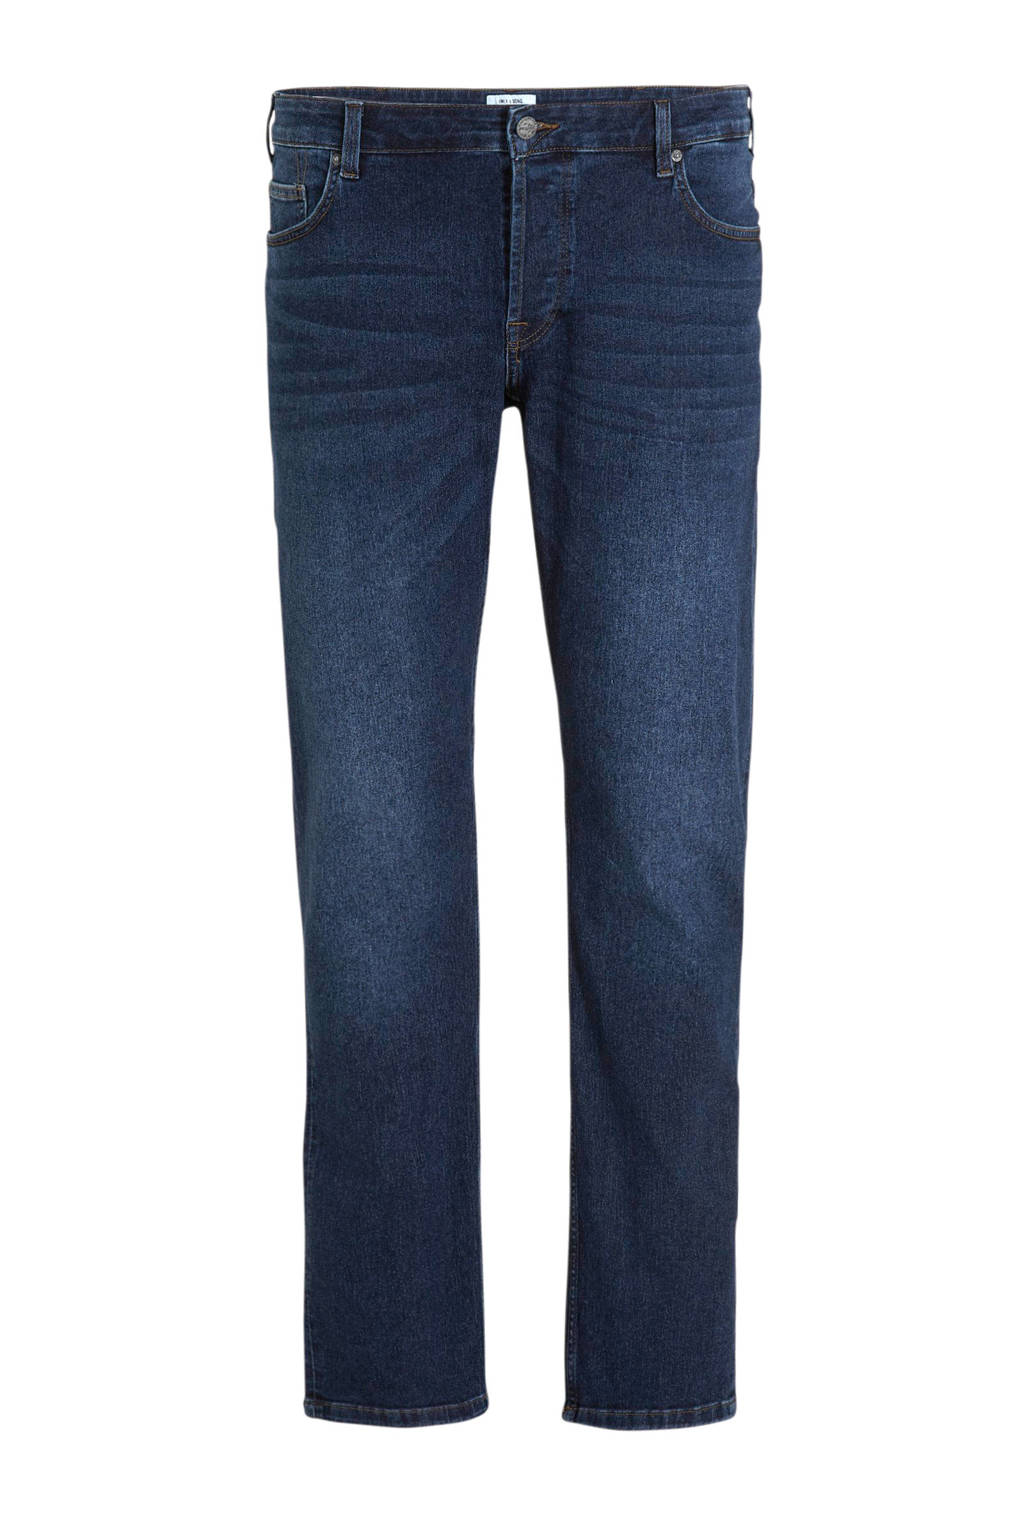 C&A Here & There slim fit jeans stonewashed, Stonewashed